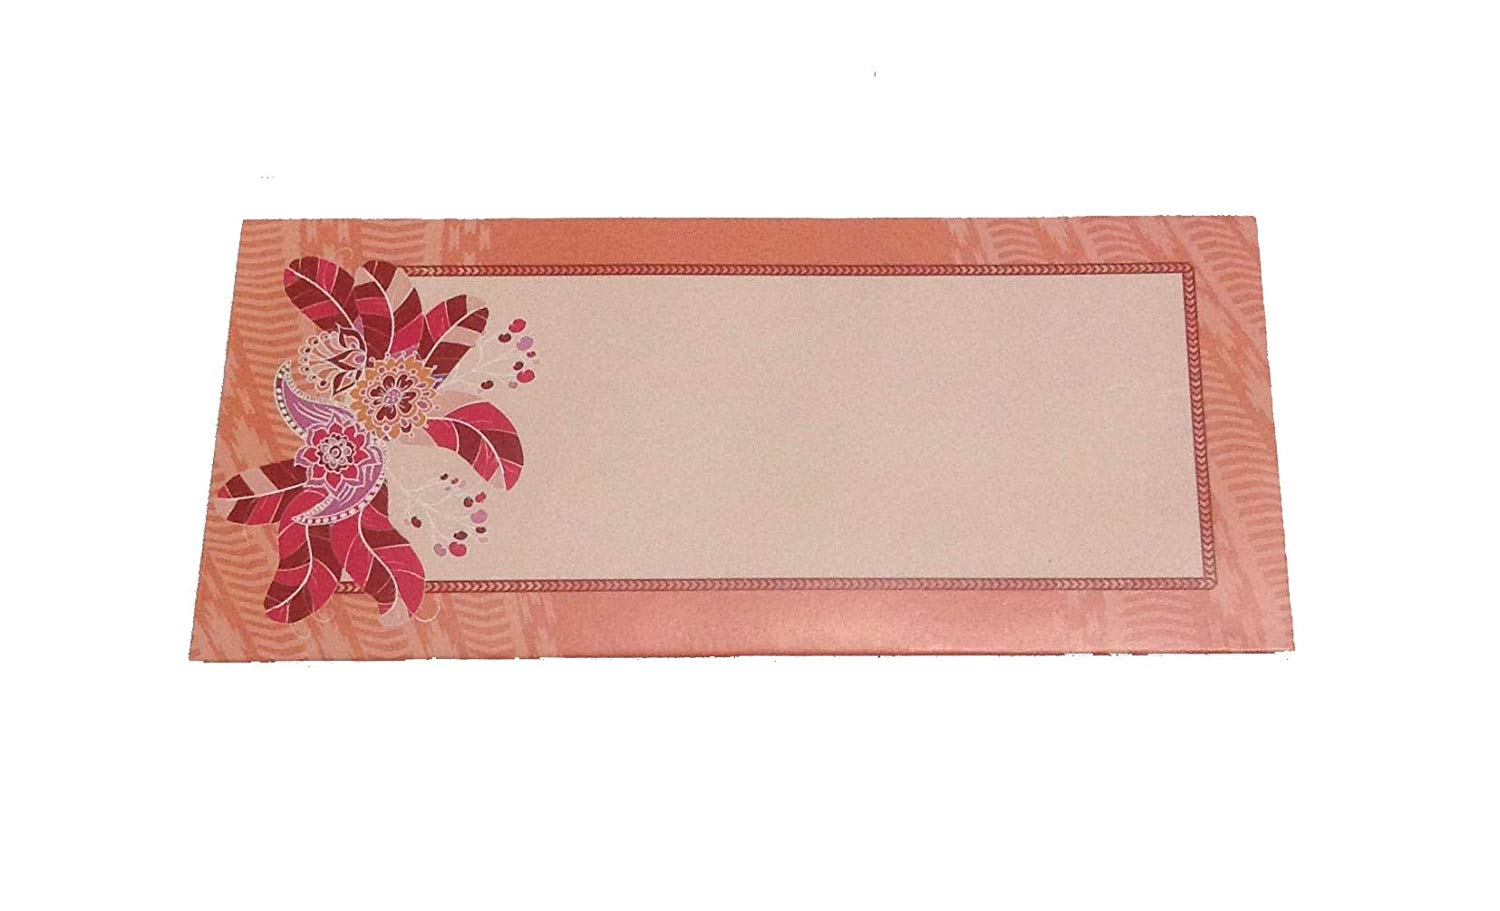 Tej Gifts Gift Envelope - Pack of 20 Shagun Money Cover India Wedding Accessory Eid Gift